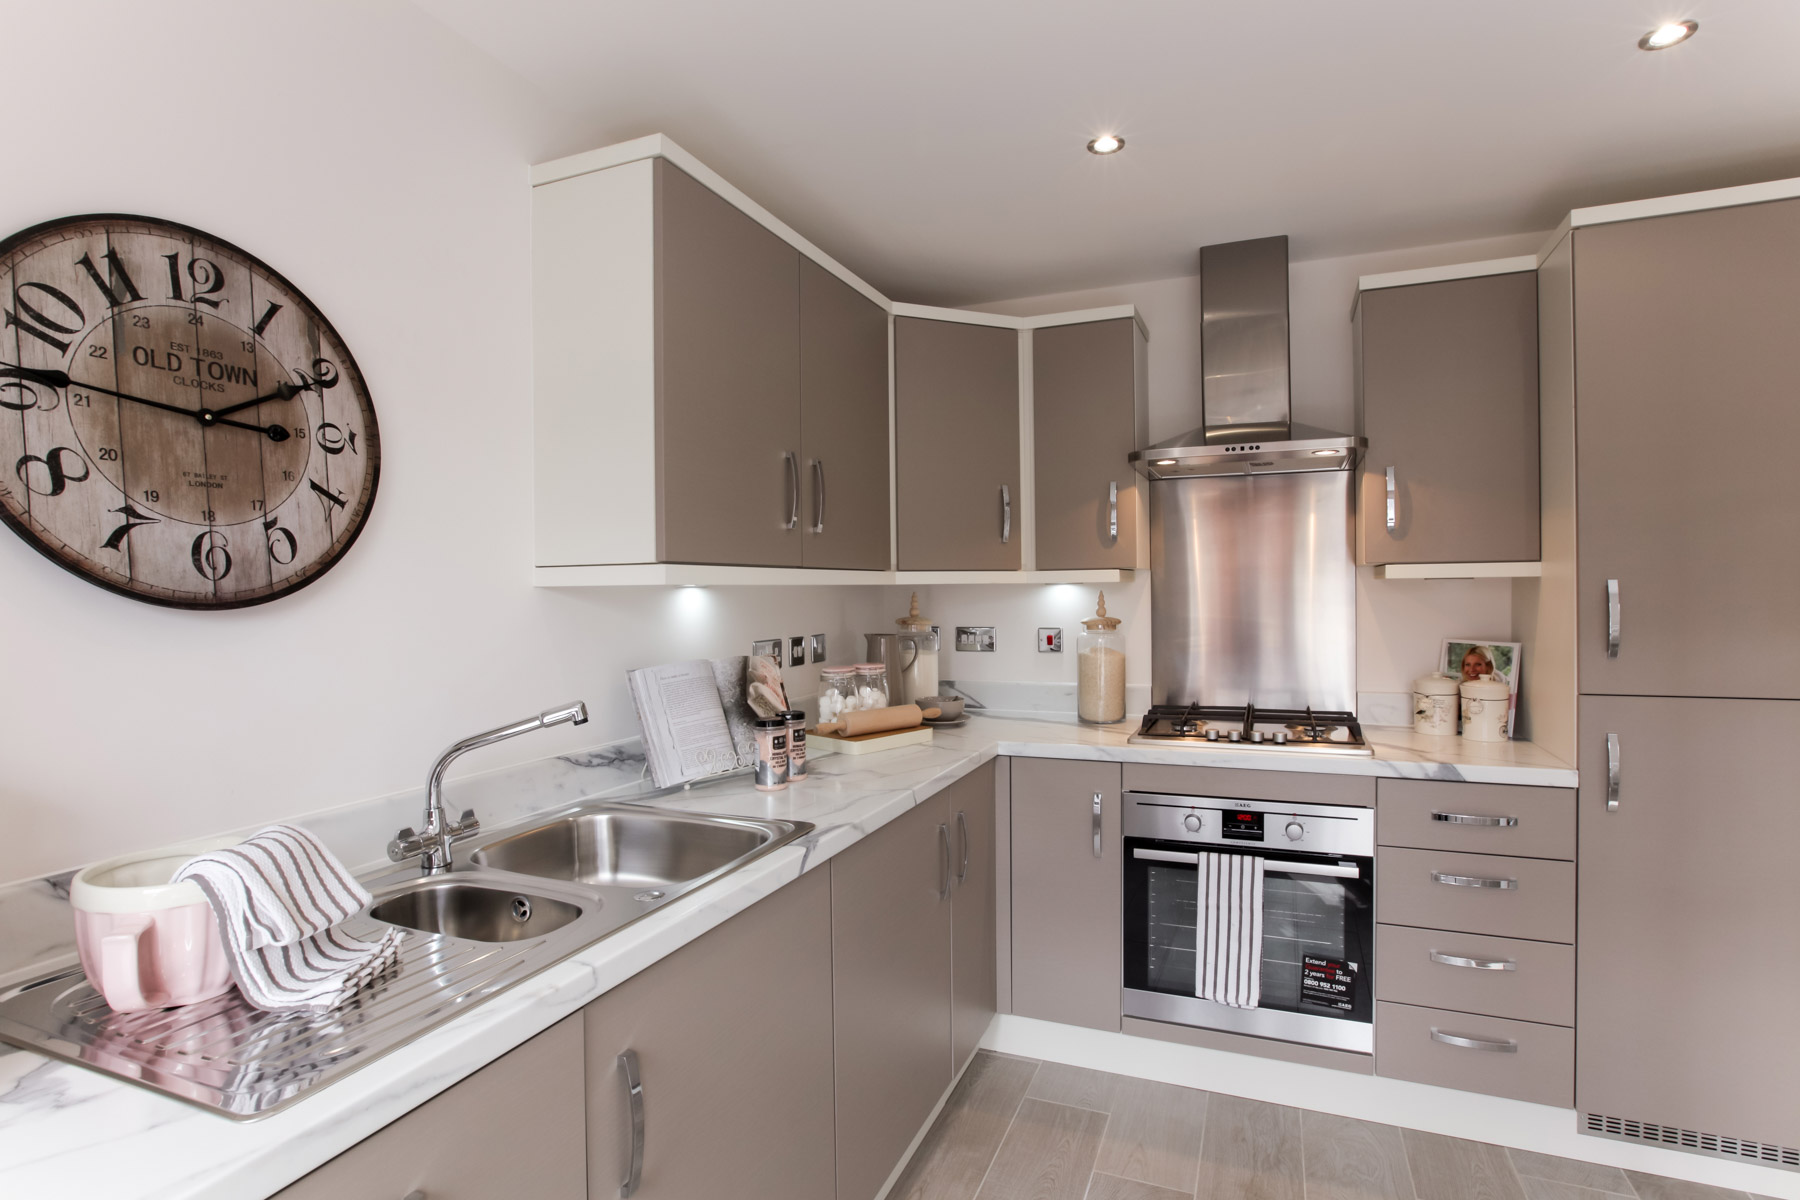 TW Exeter - Copleston Heights - Flatford example kitchen